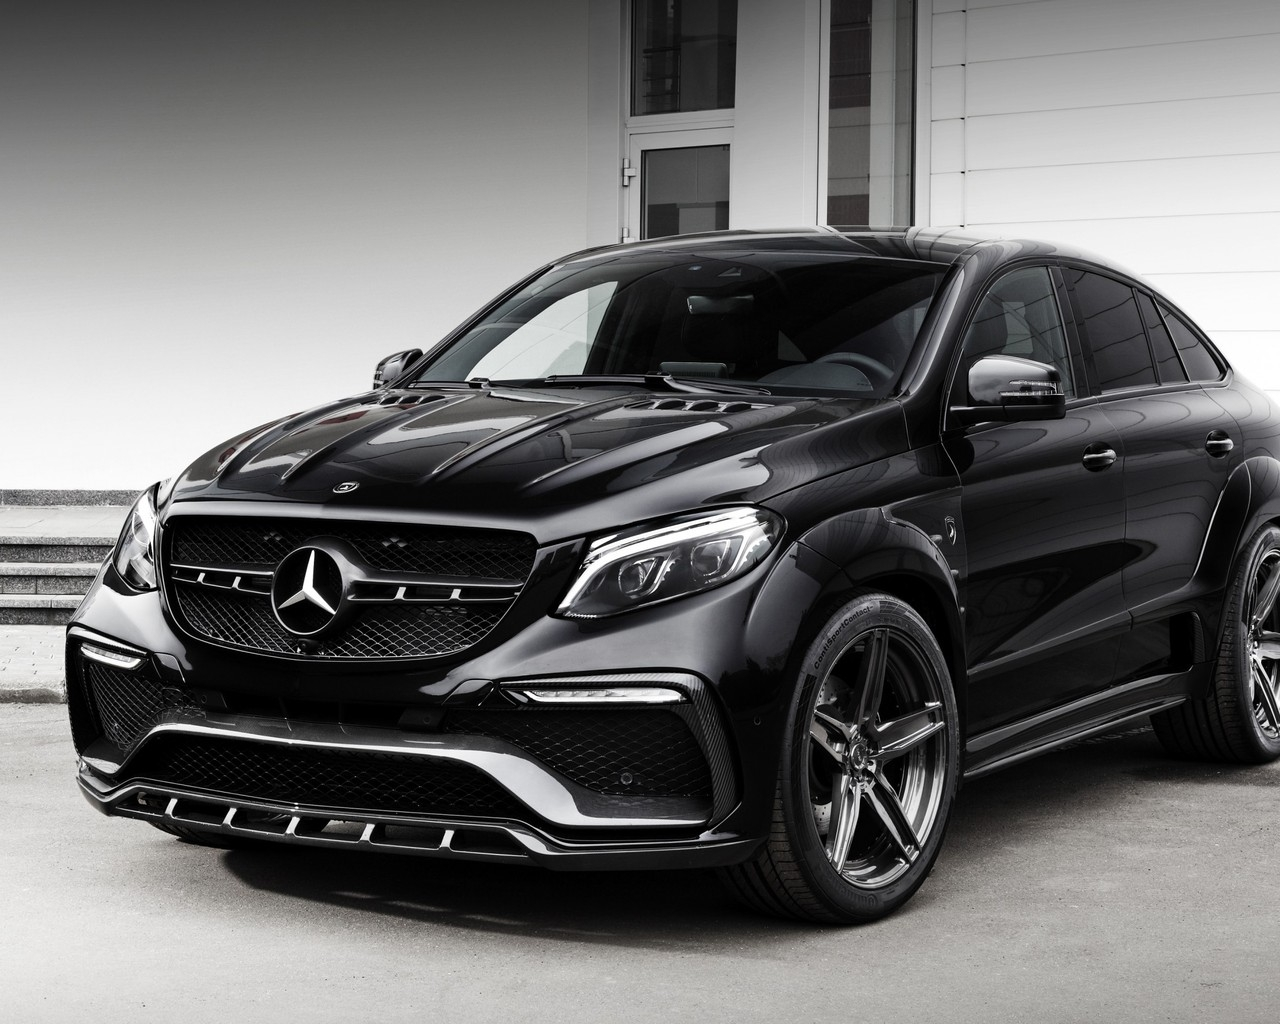 2016 Mercedes-Benz GLE-class for 1280 x 1024 resolution